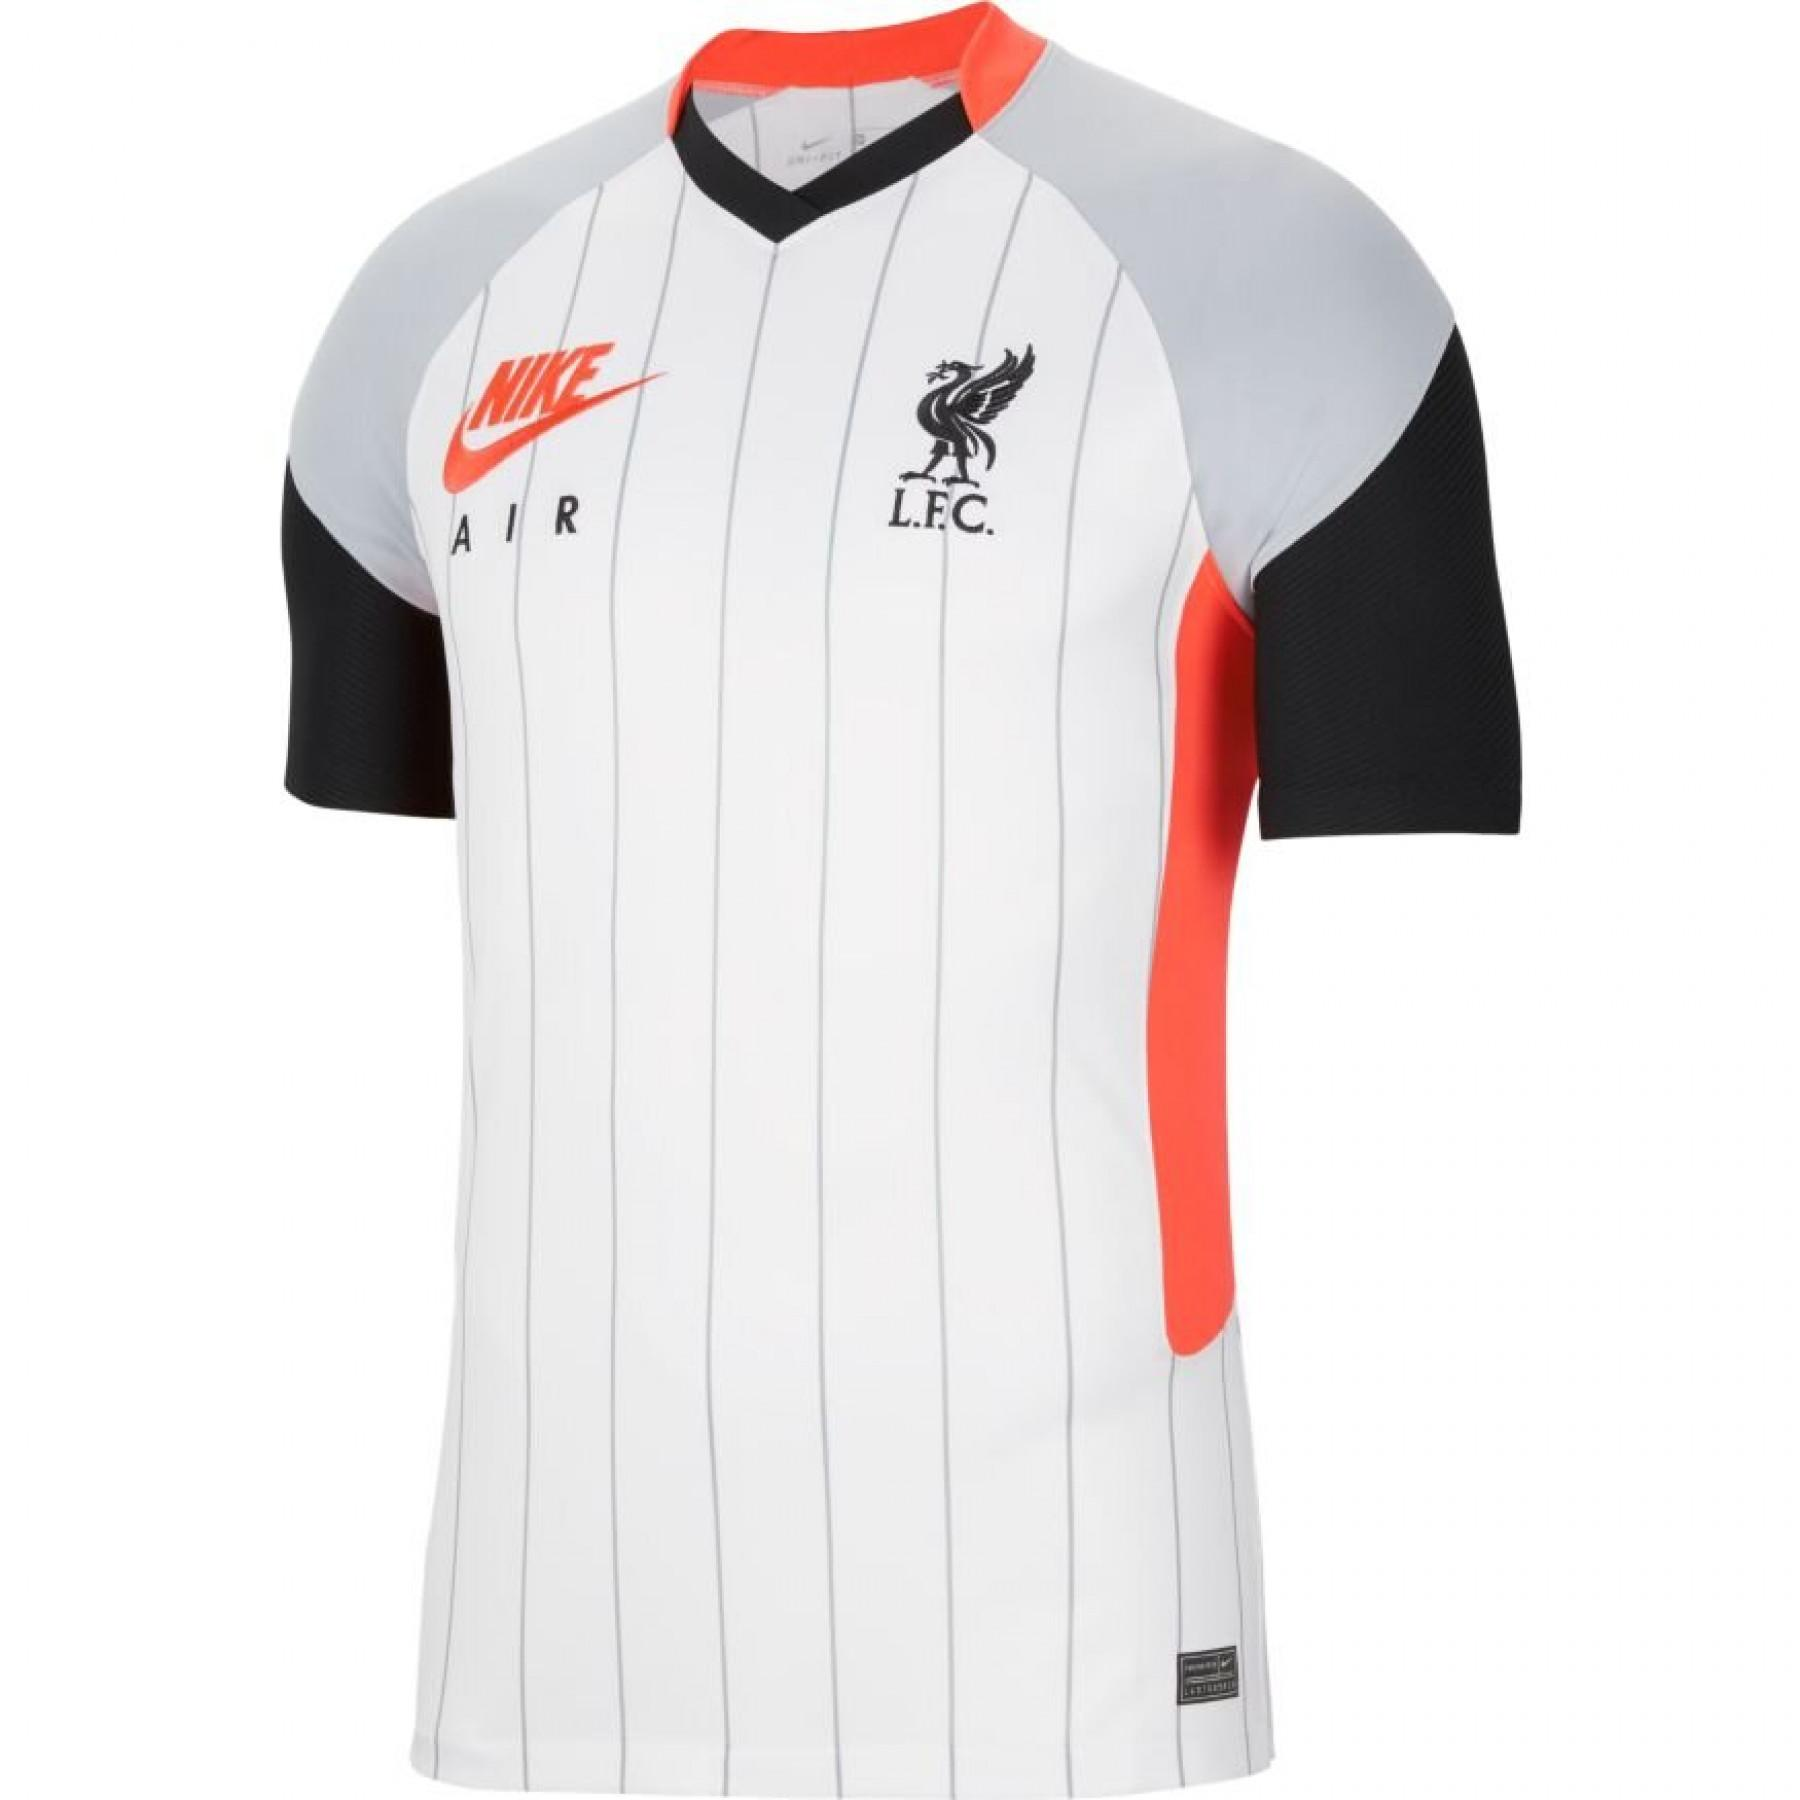 Fourth Liverpool 2020/21 jersey